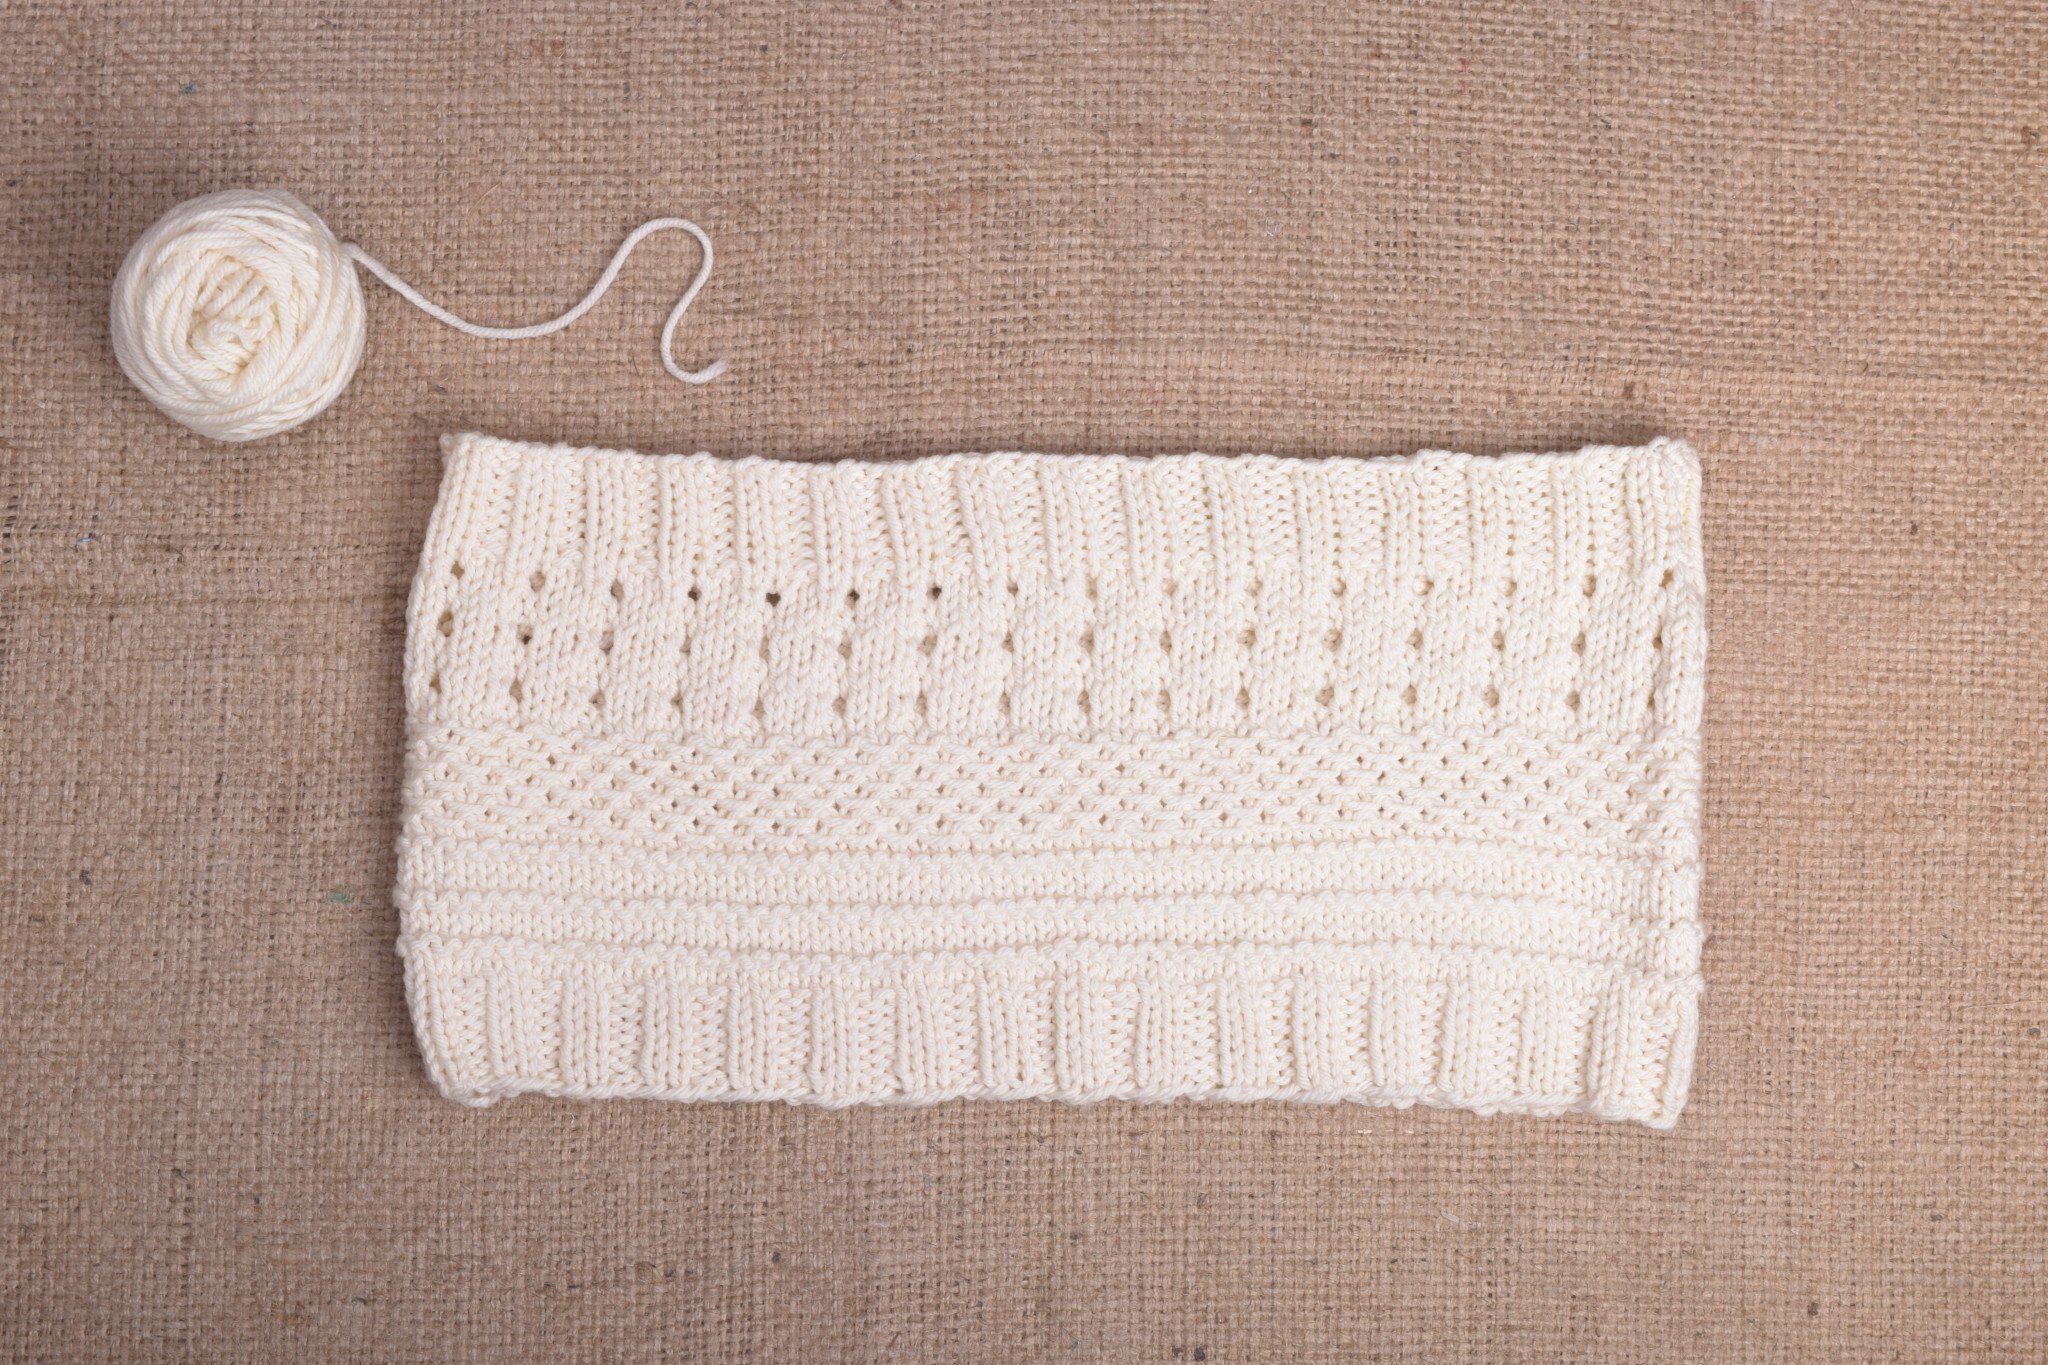 Knitting 101: Learn to Knit; Monday, April 29, May 6, 13, 20;  1:00-3:00PM